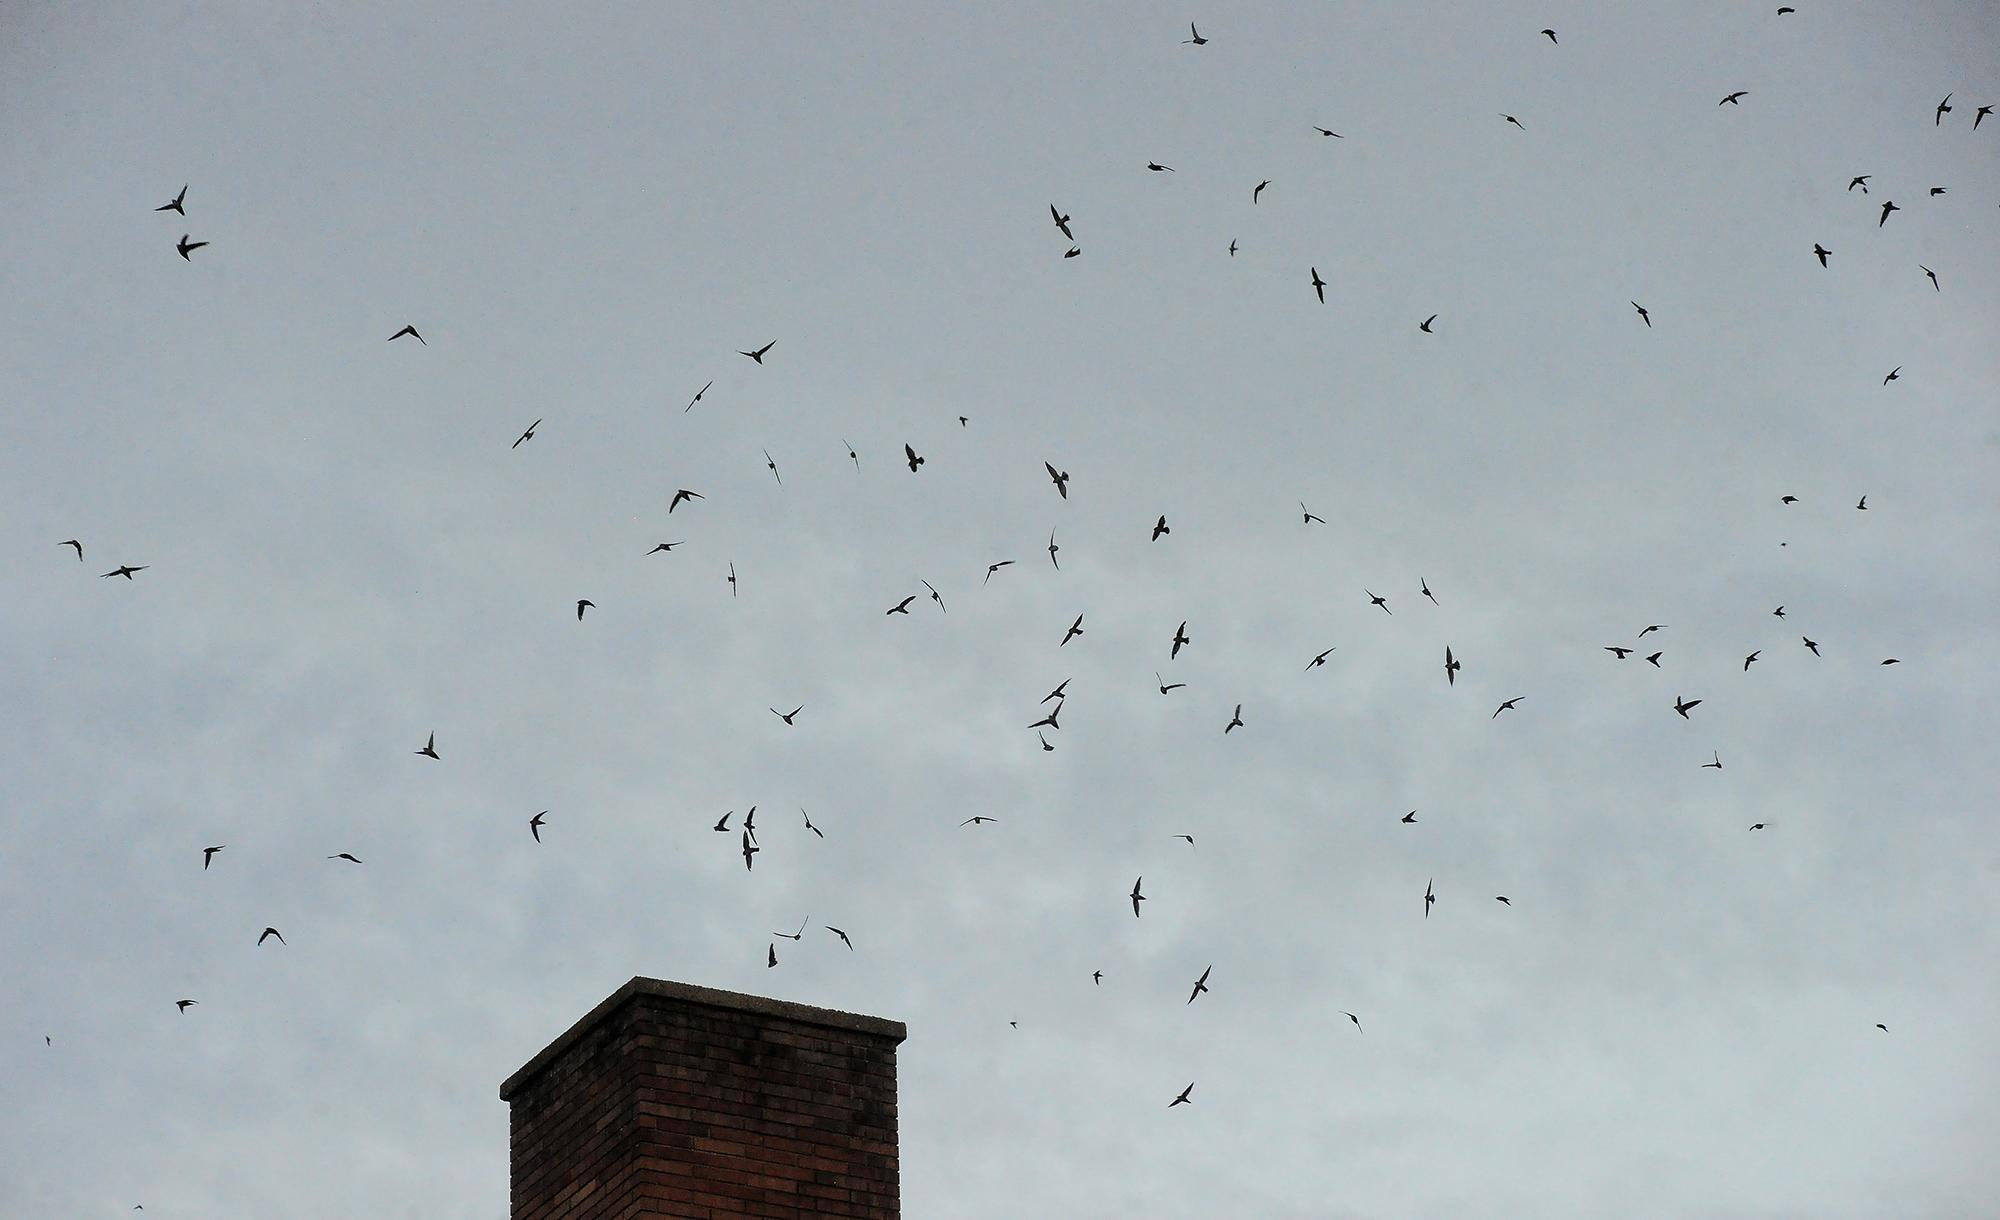 Swifts fill the sky over a chimney at Hedrick Middle School where they roost at night during their seasonal migration. Photo by Denise Baratta